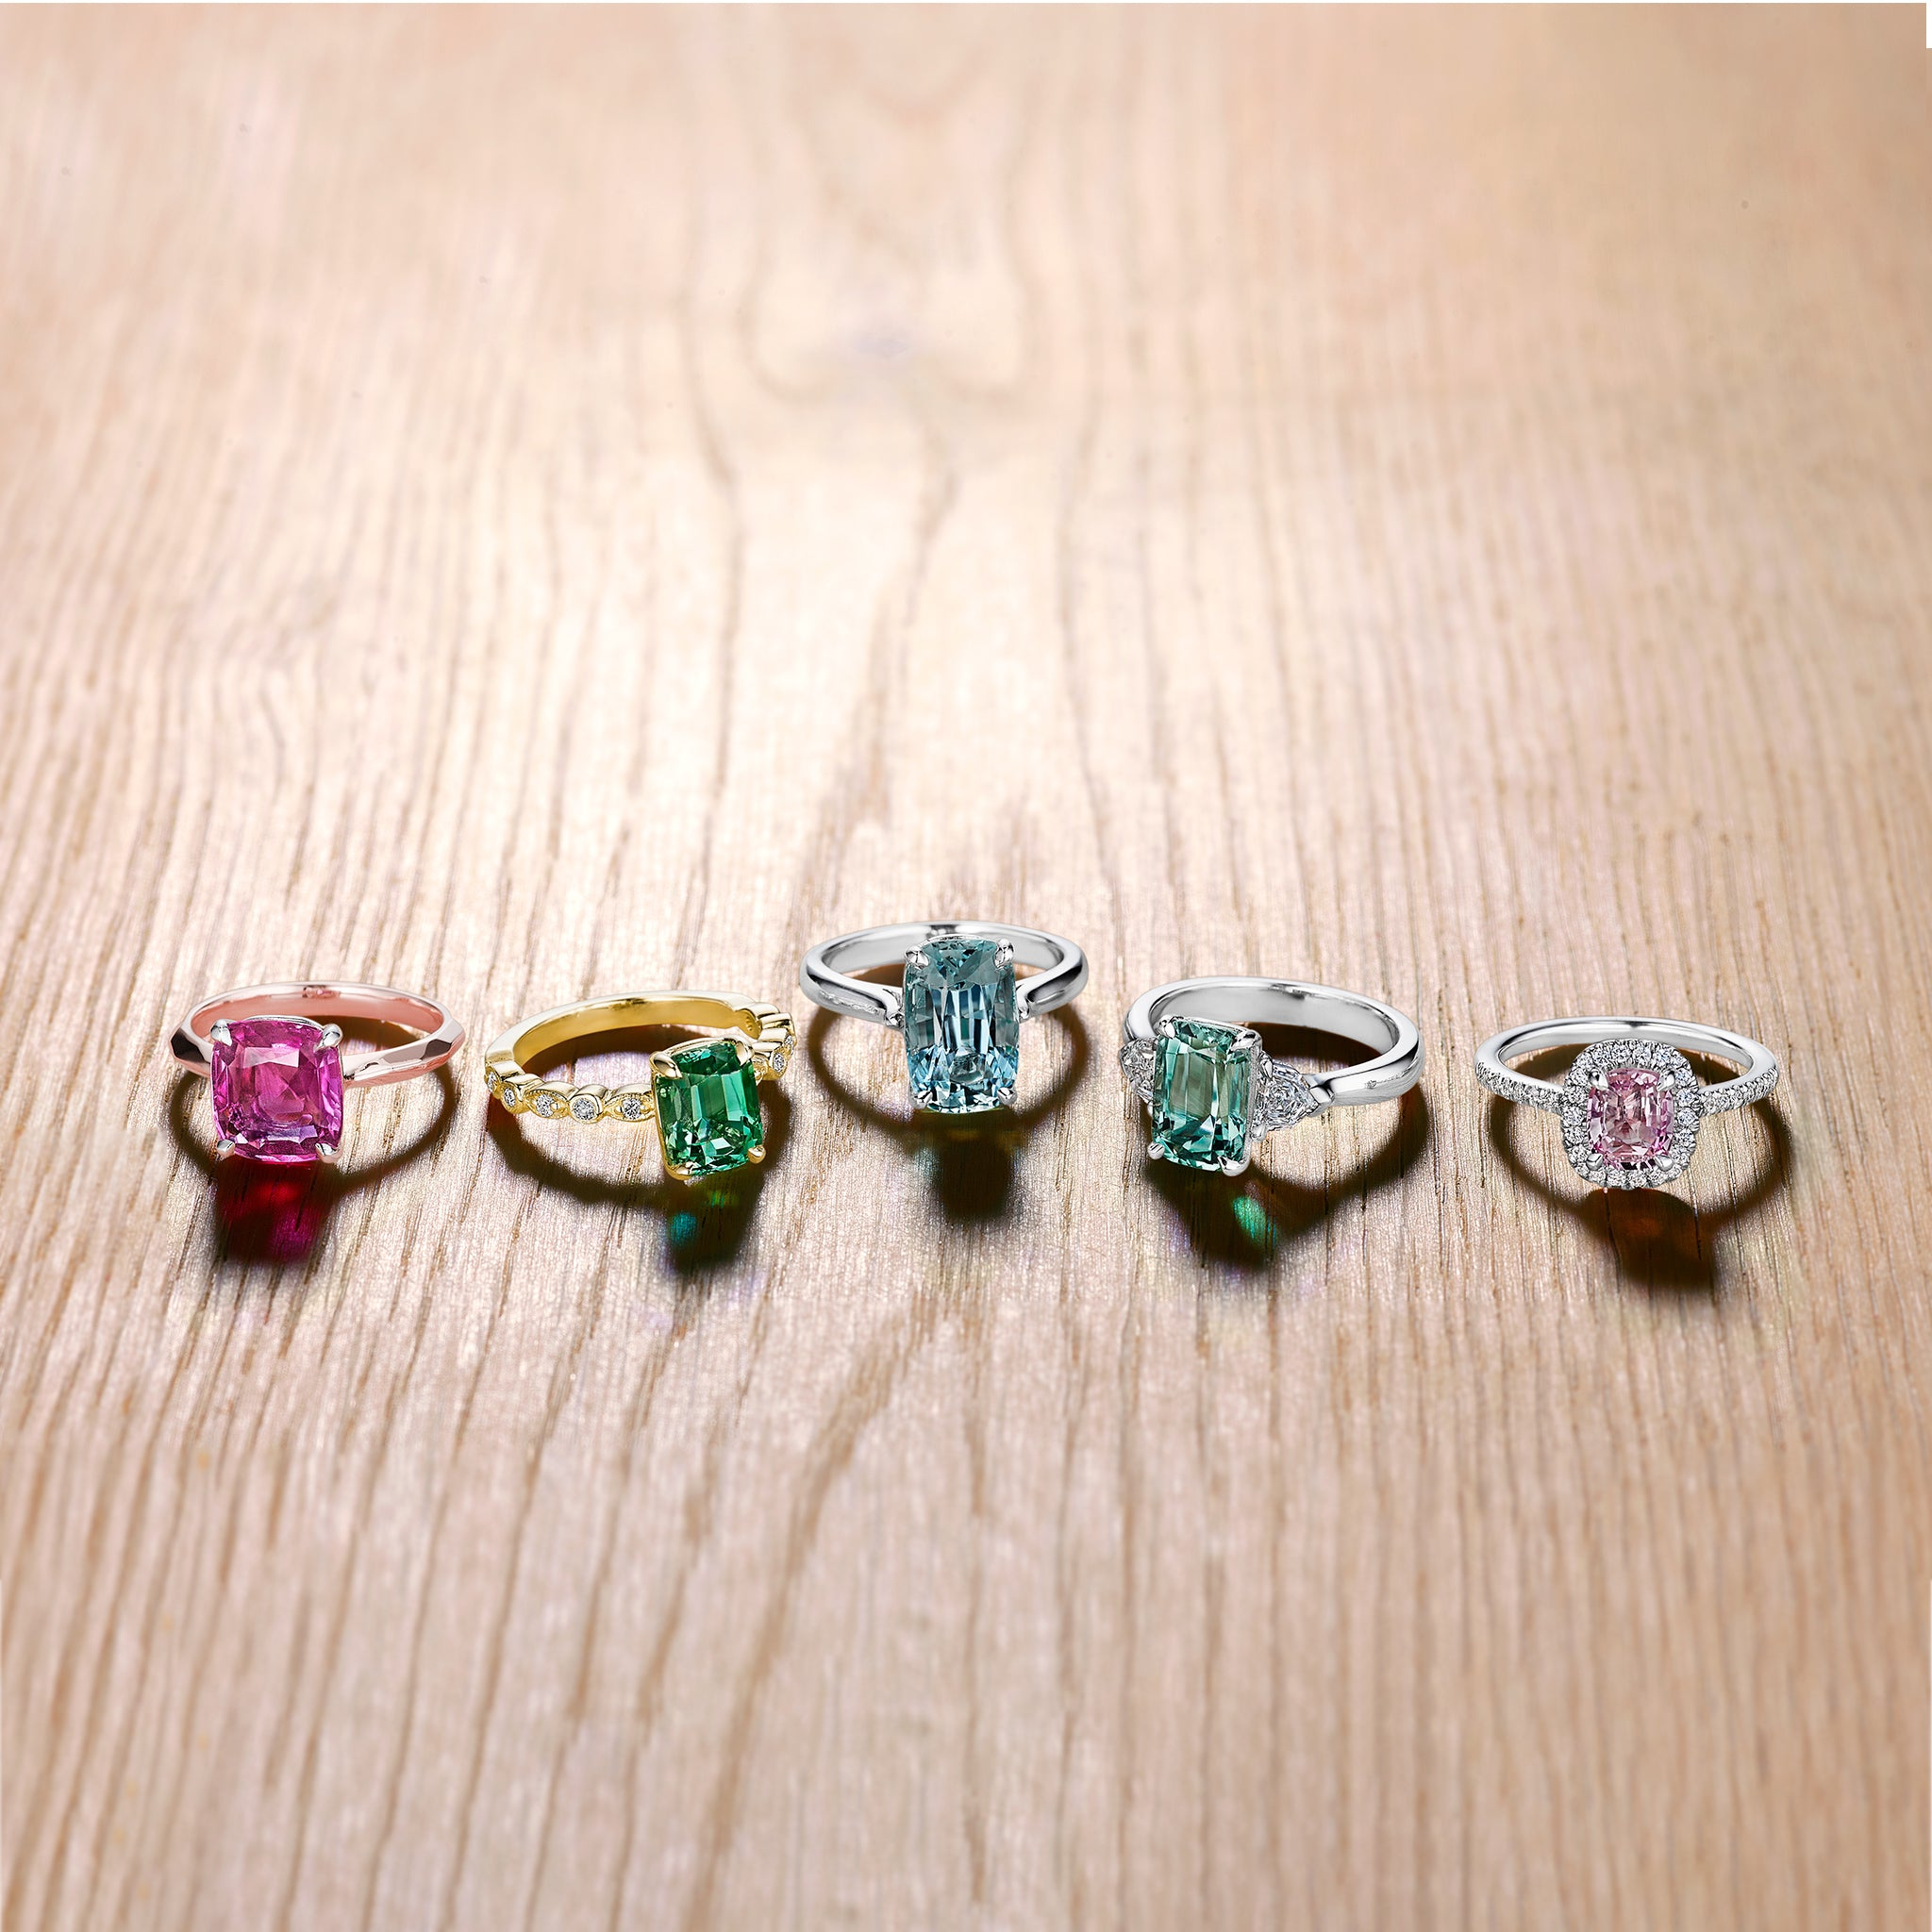 Mimi So Bridal Collection Multi-colored Gemstone Engagement Rings